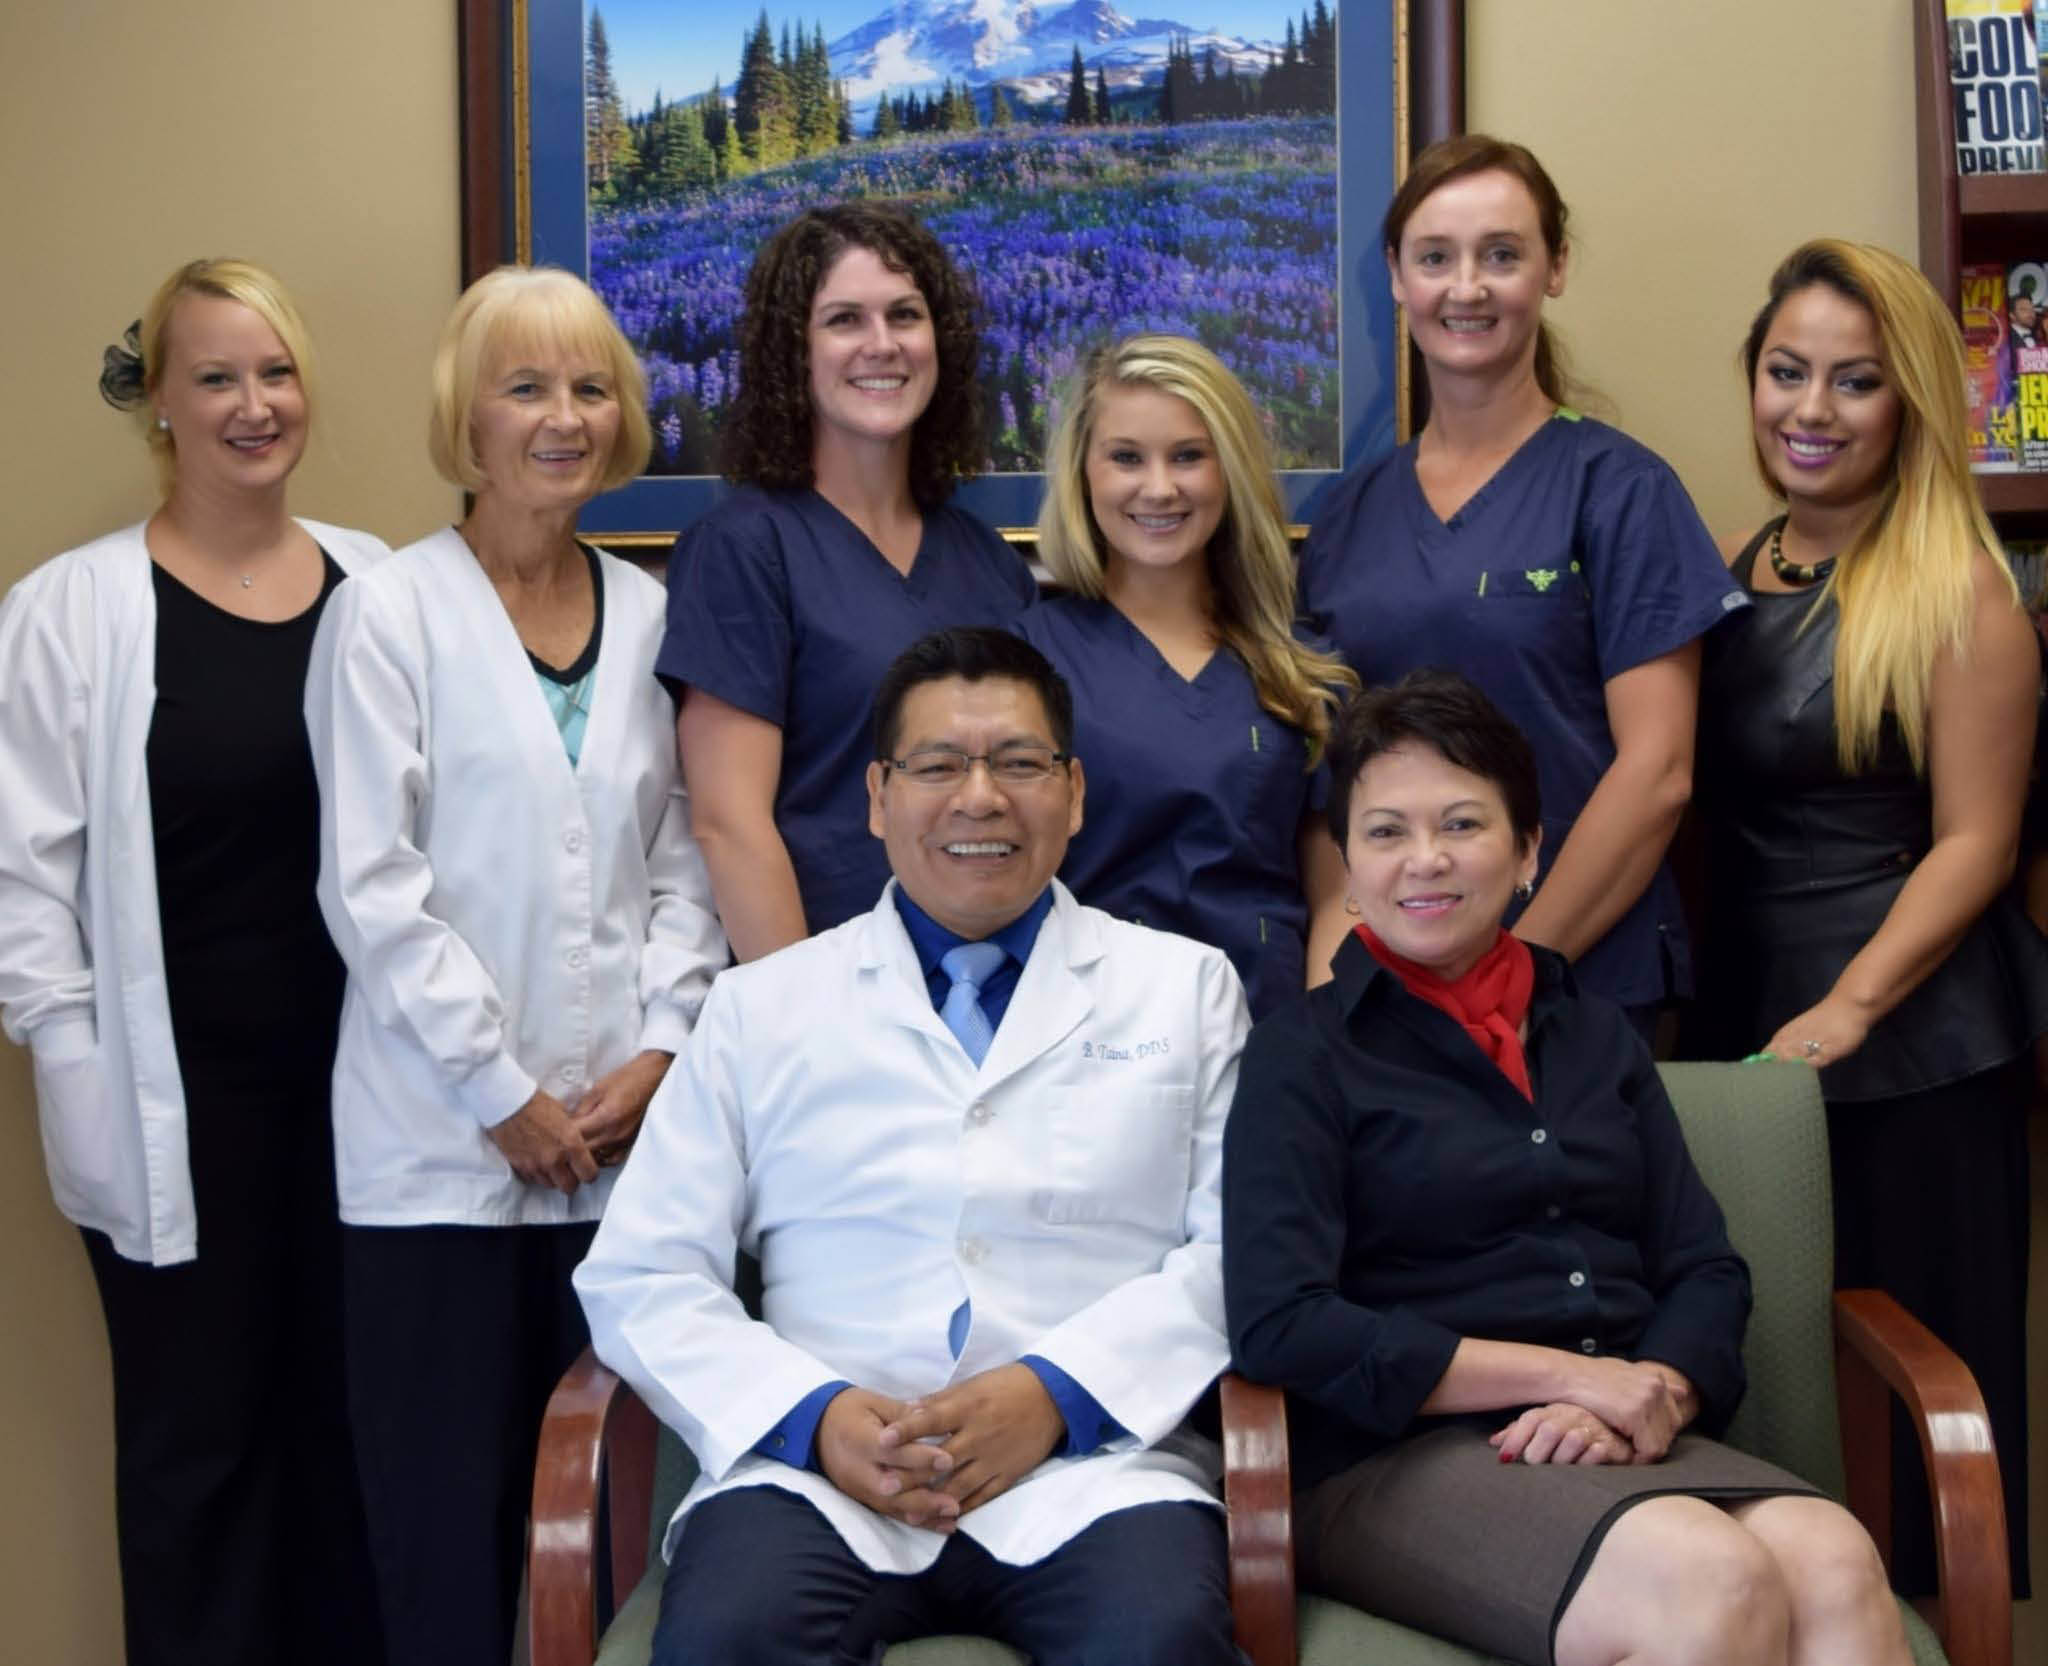 Maple Valley Dentistry Professionals friendly staff with Dr. Bernardo E. Taina, DDS